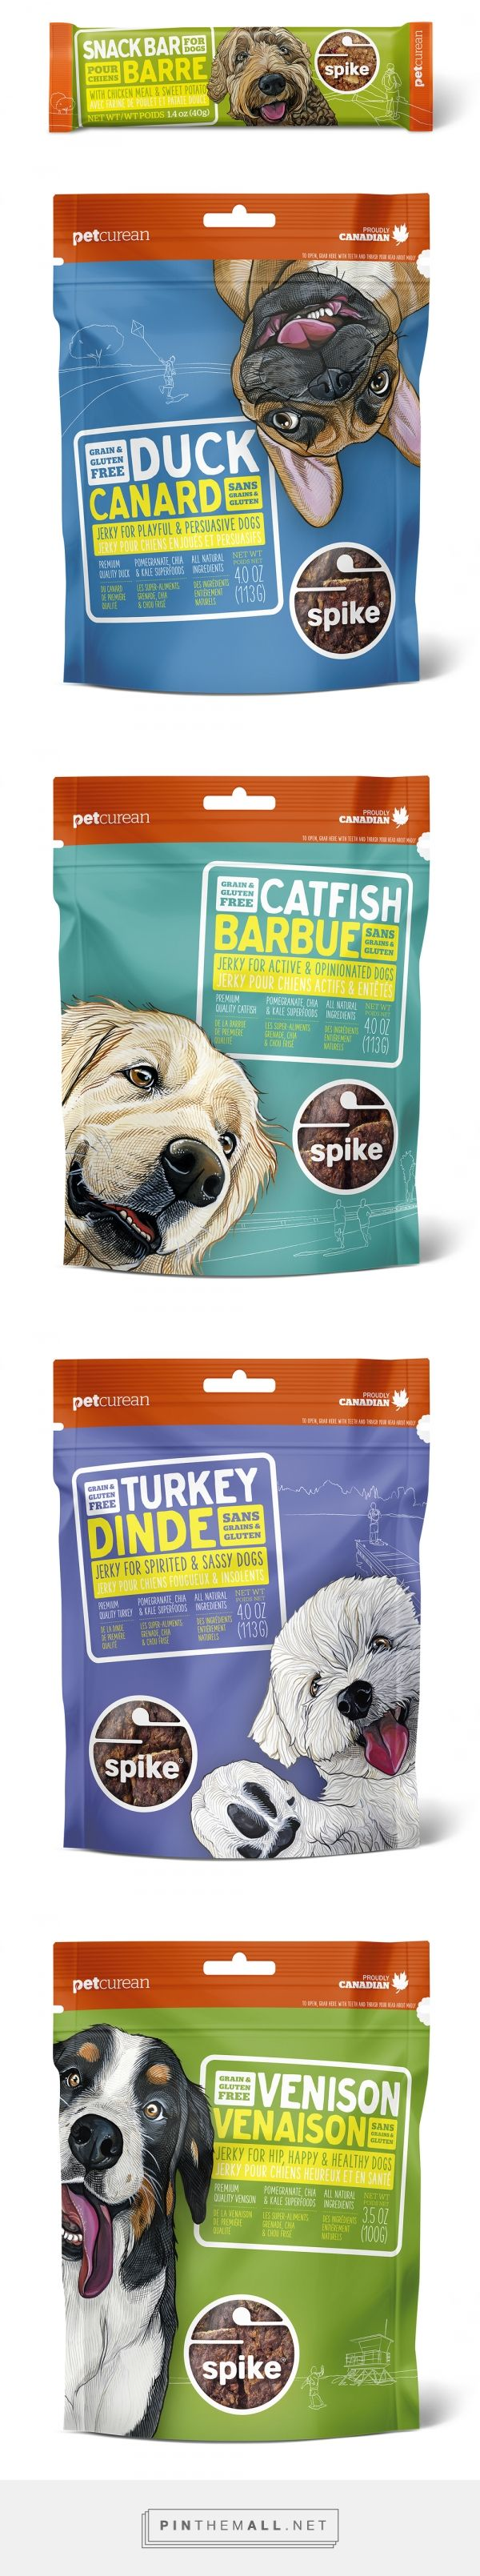 Editorial and Commercial Gallery | Art by Manda curated by Packaging Diva PD. Petcurean Spike treat packaging.